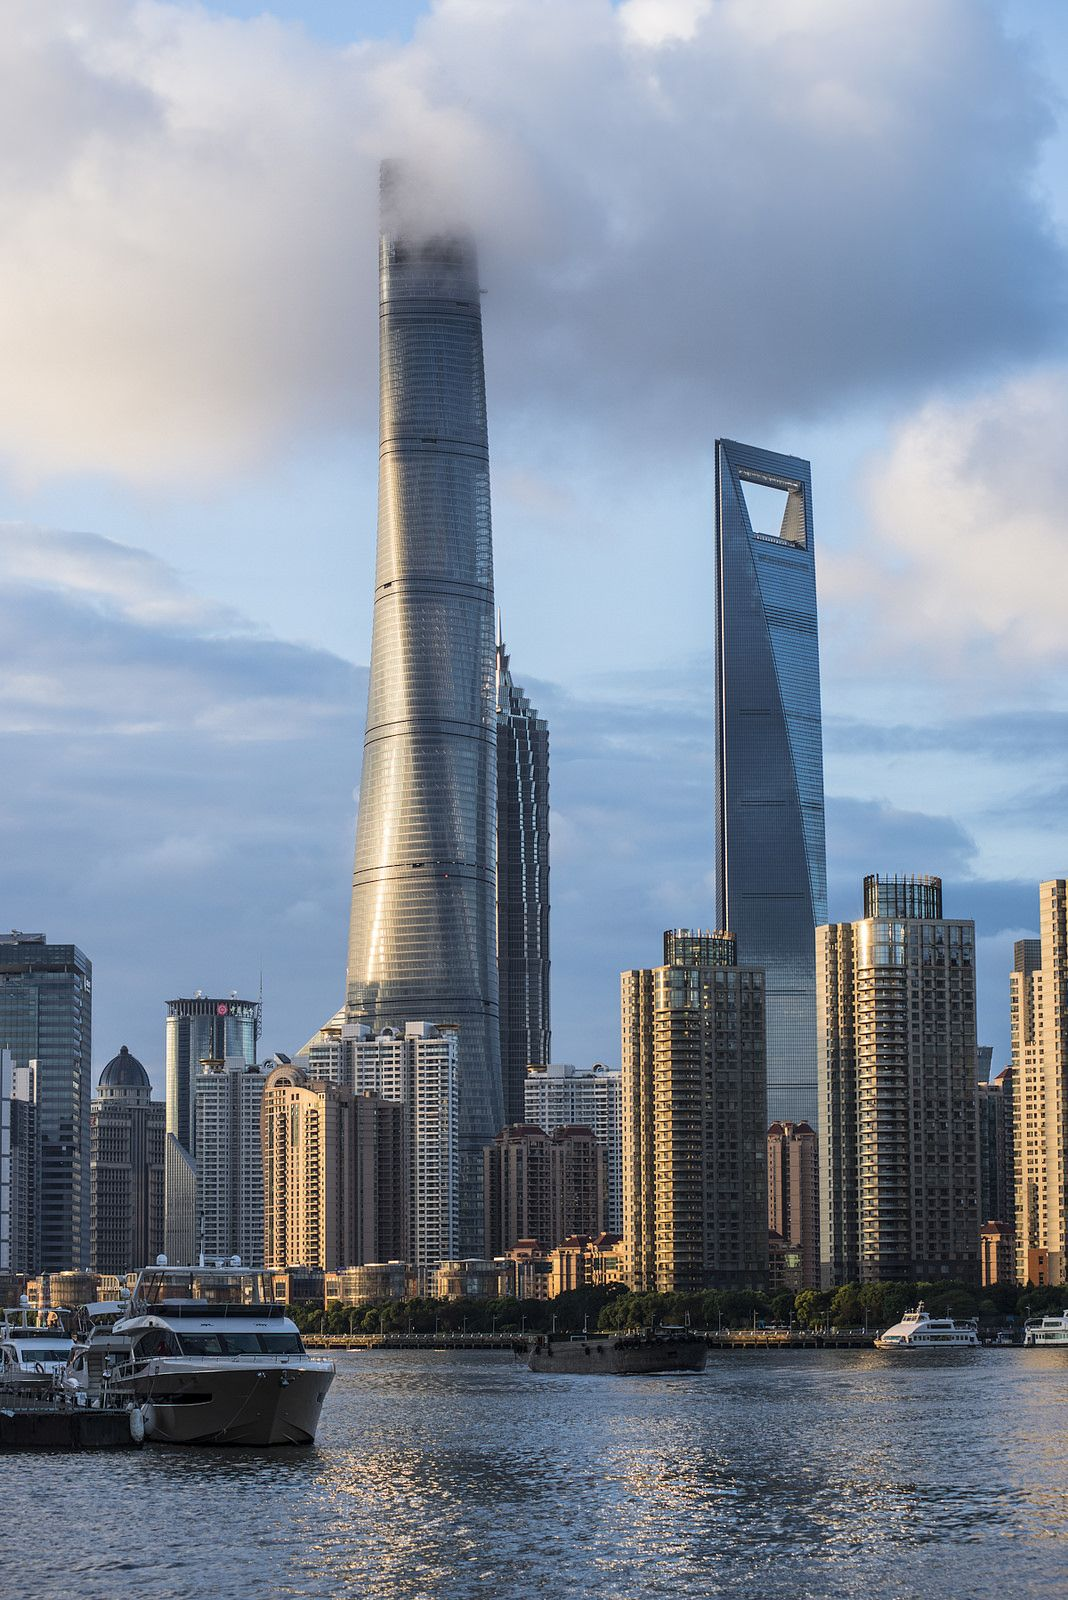 Awesome Shanghai Tower touching the clouds   China   Pinterest ...